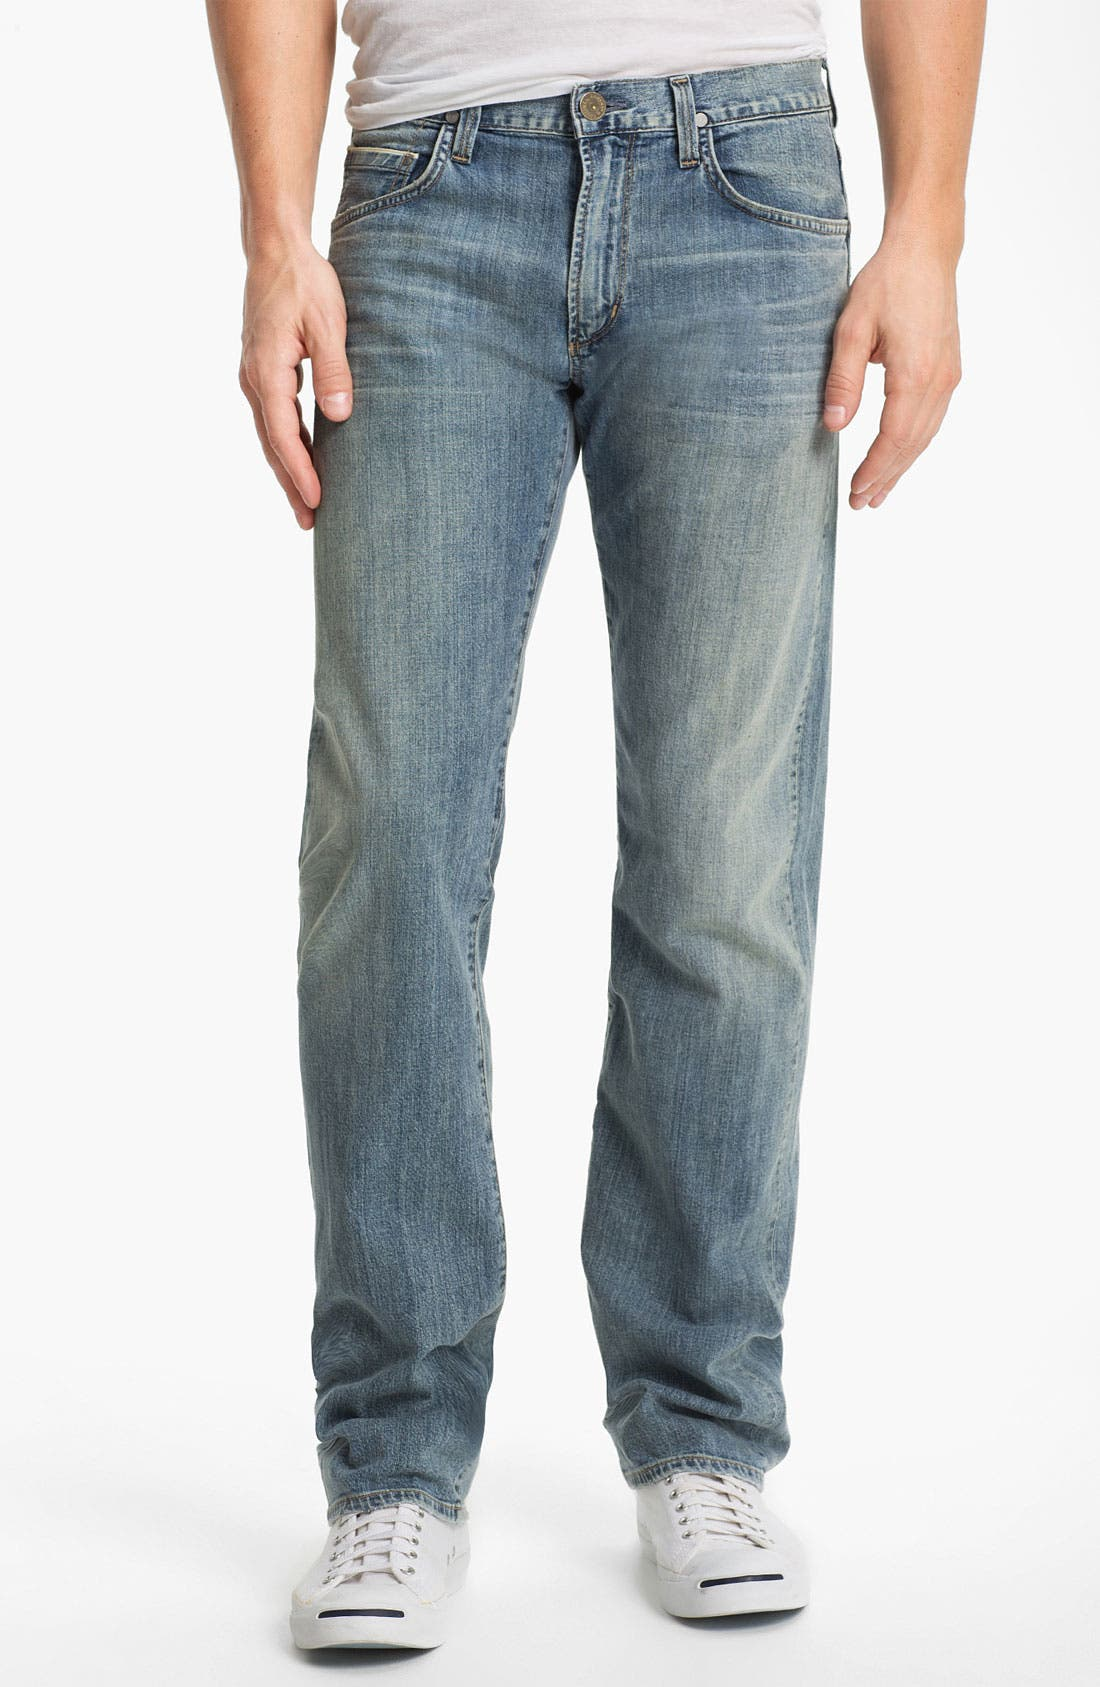 Alternate Image 1 Selected - Citizens of Humanity 'Sid Selvage' Straight Leg Jeans (Lukas Wash)